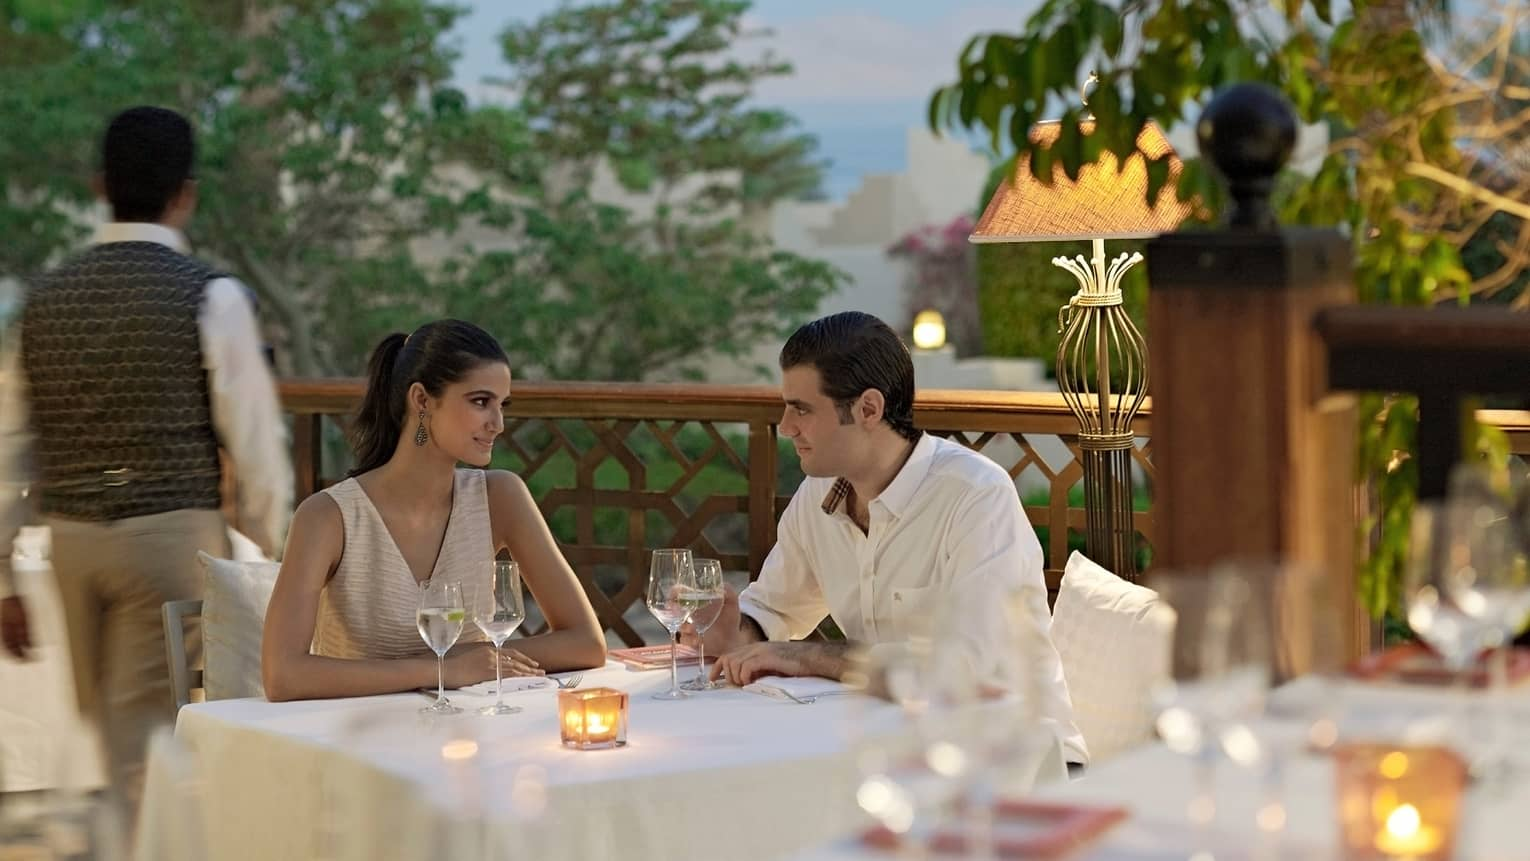 Man and woman at formal dining table on patio at night